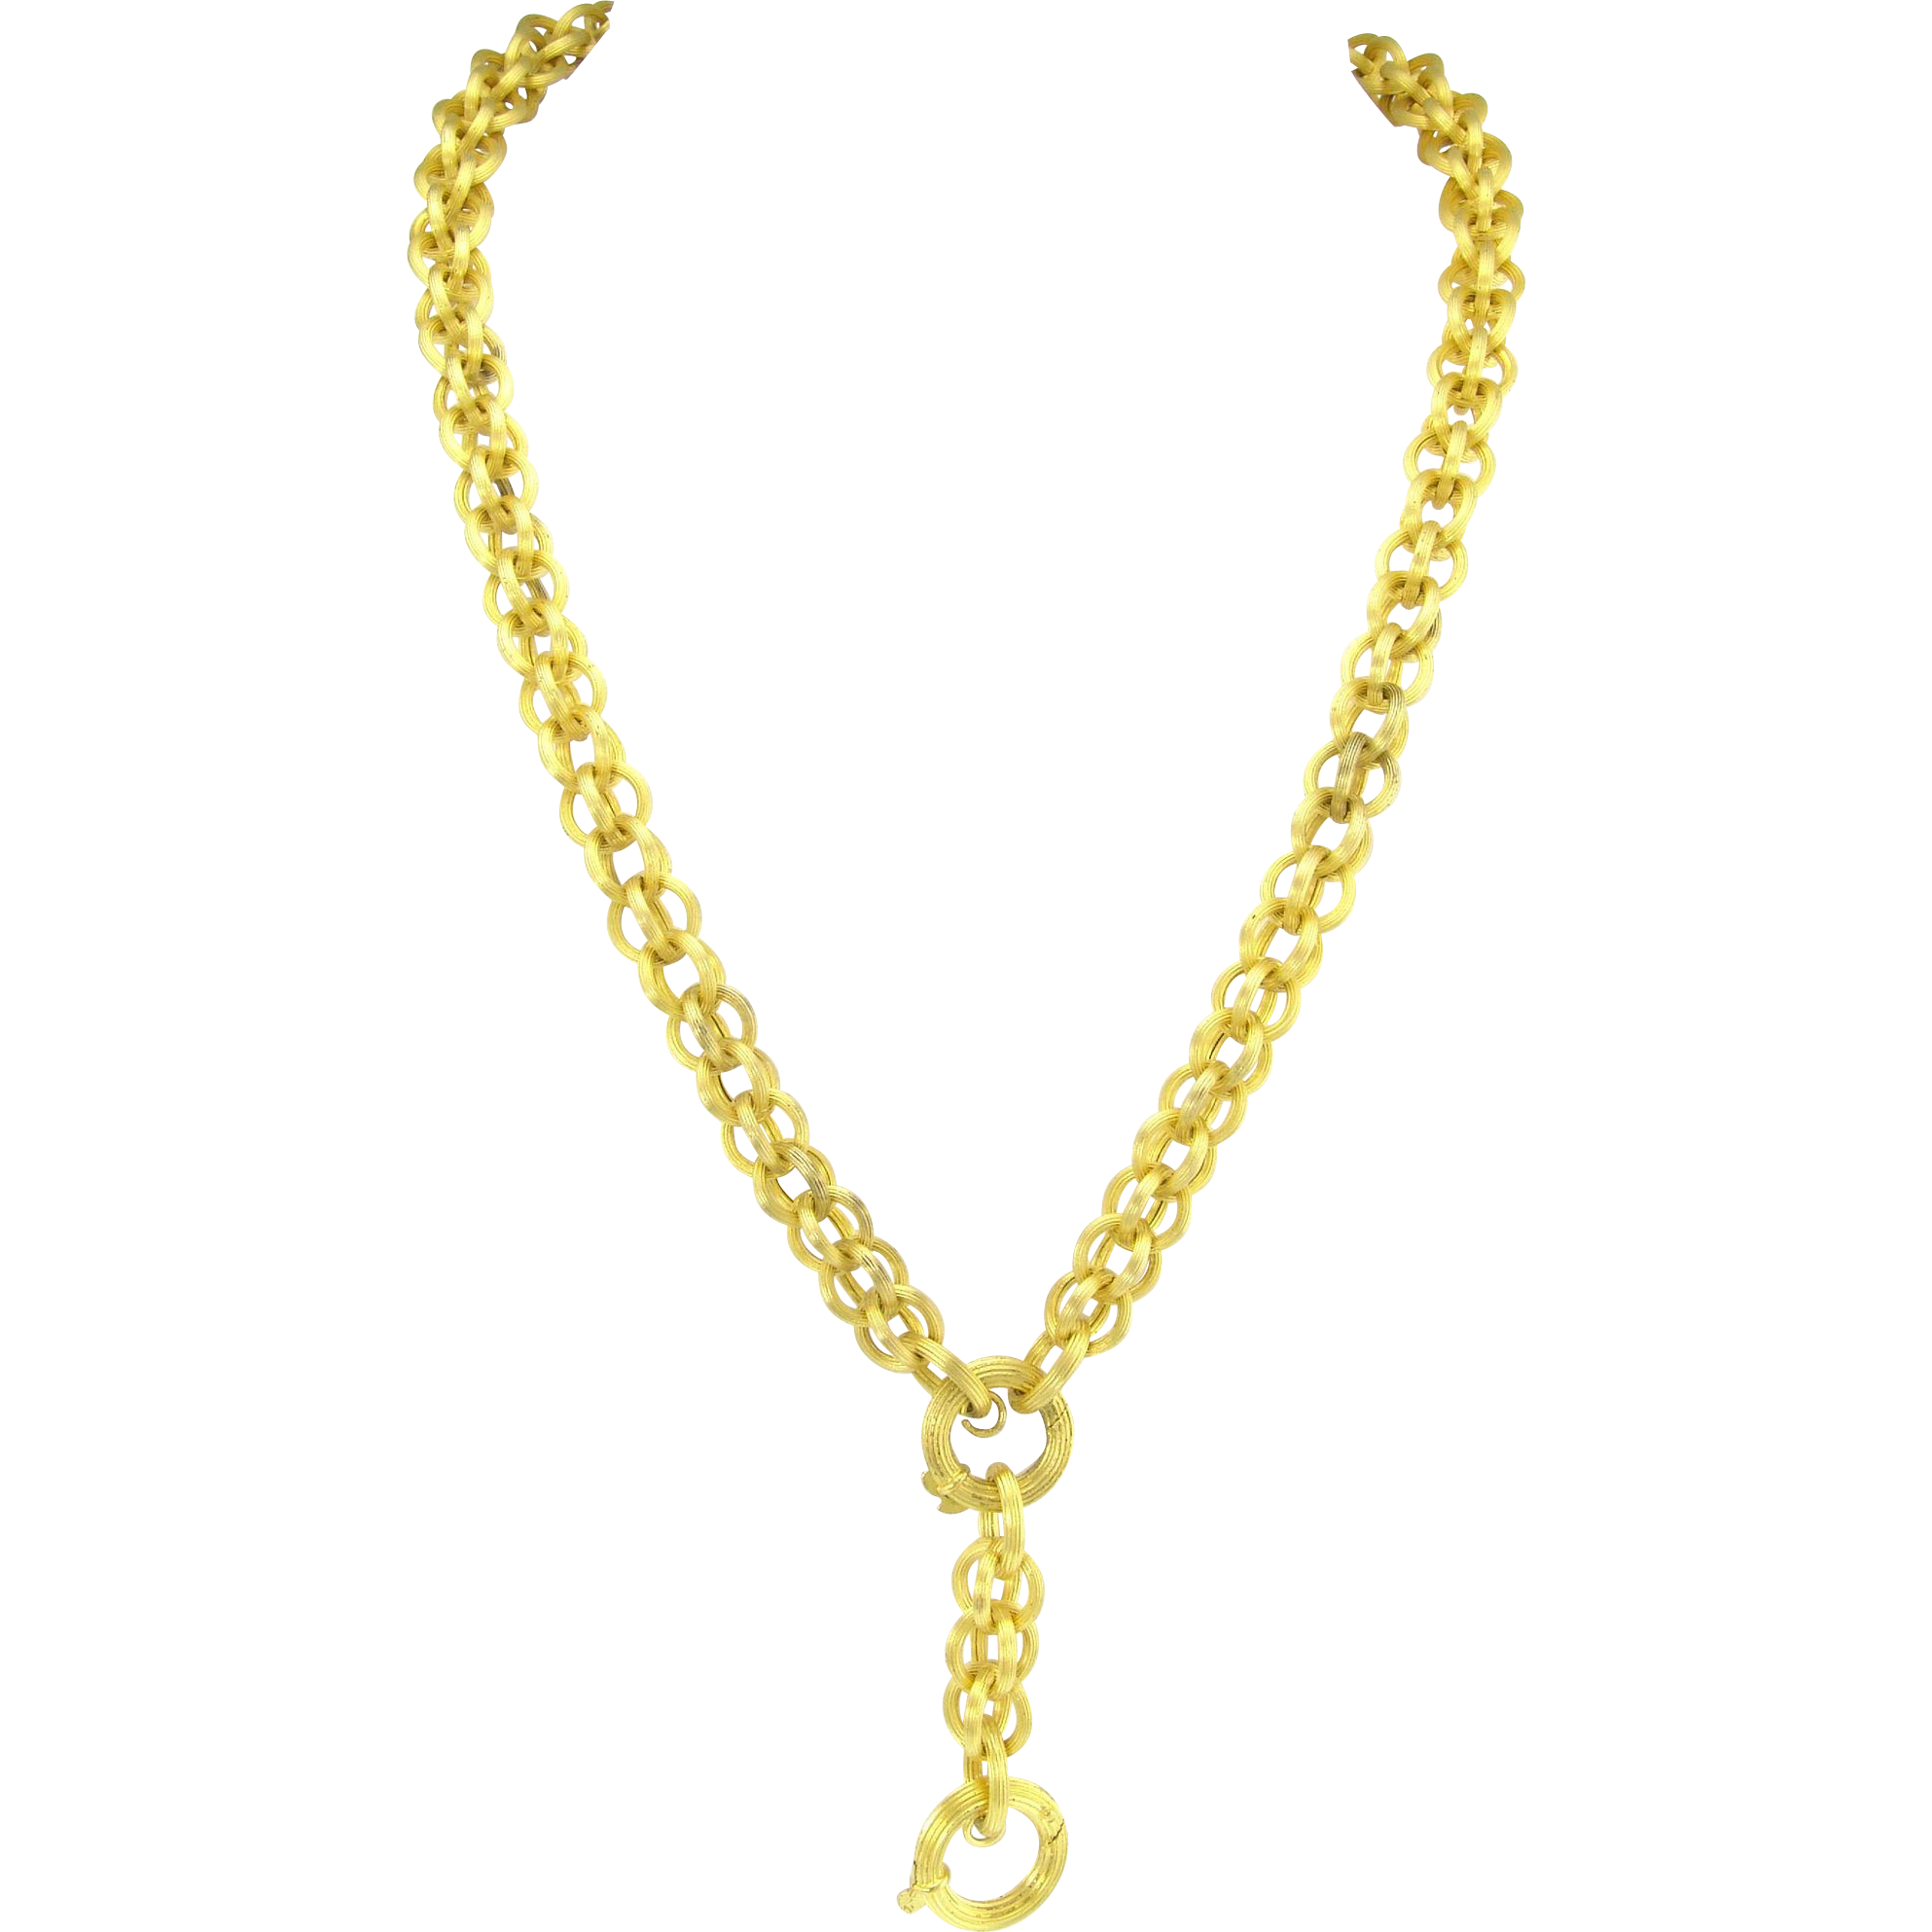 Gold money chain clipart with transparent backound clip art royalty free stock Gold money chain clipart with transparent background clip art royalty free stock